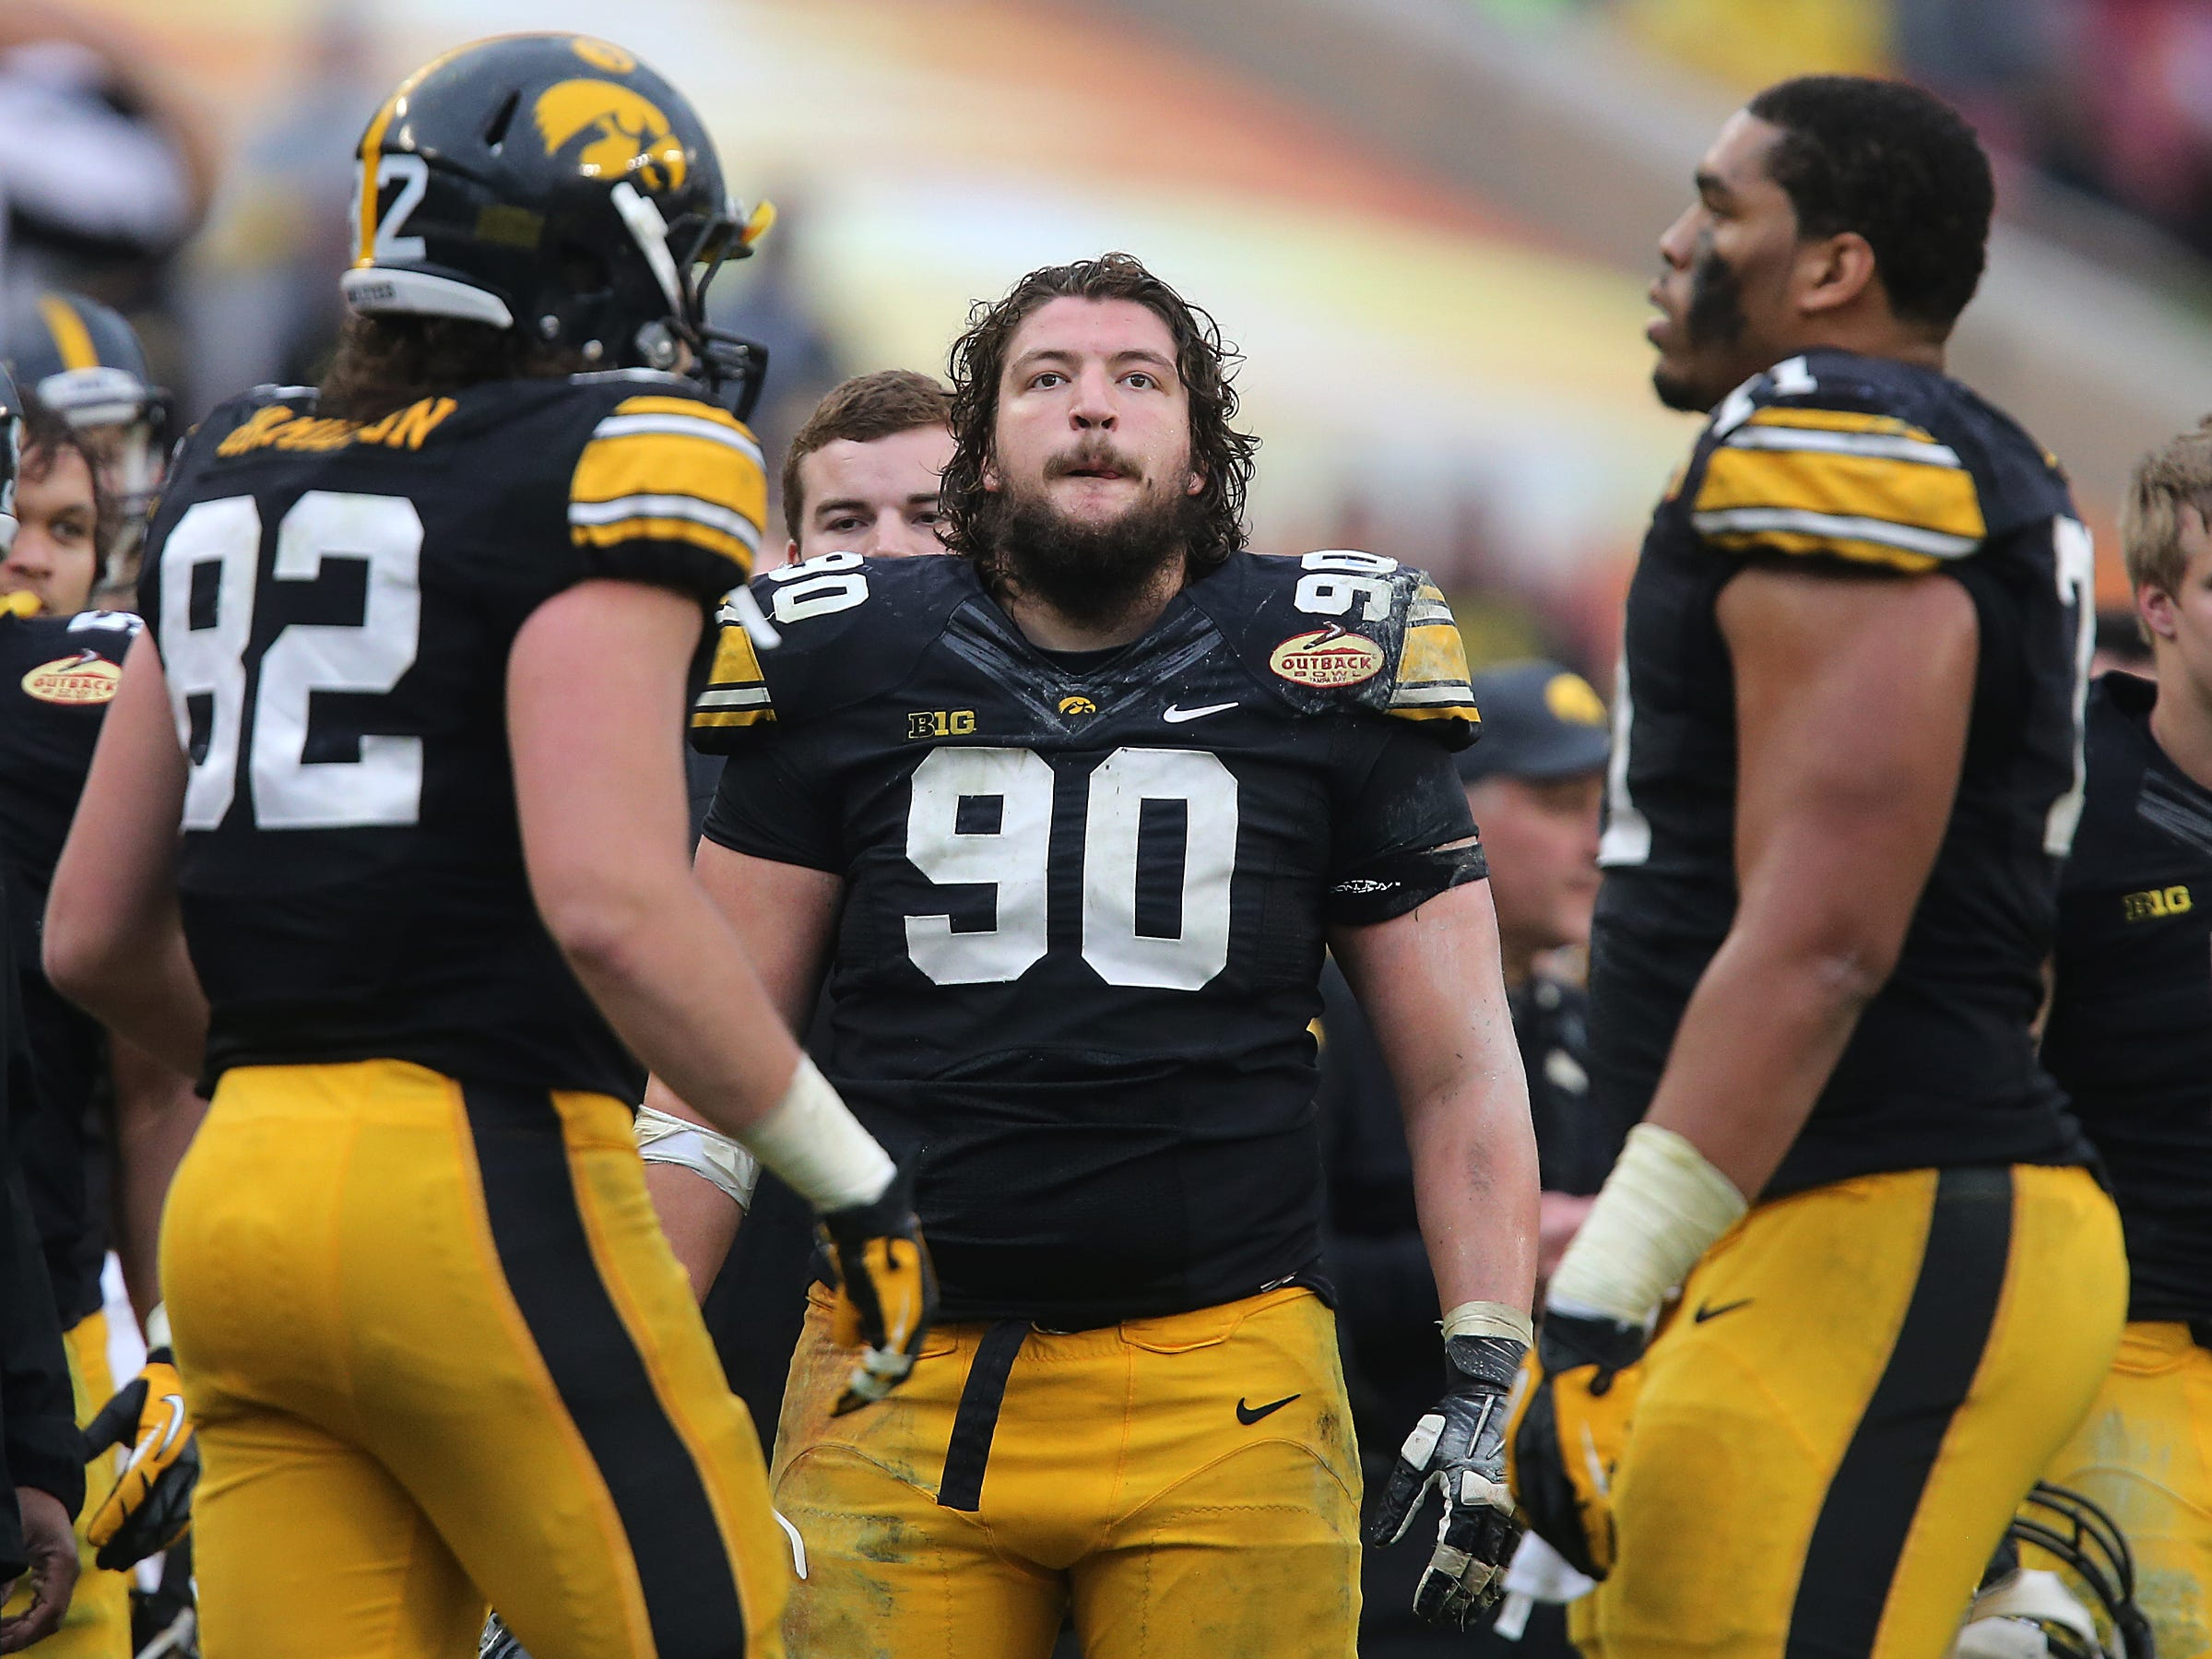 Iowa defensive lineman Louis Trinca-Pasat looks up at a replay in the final minute against LSU on Wednesday, Jan. 1, 2014, in Tampa, Florida. (Bryon Houlgrave/The Register)